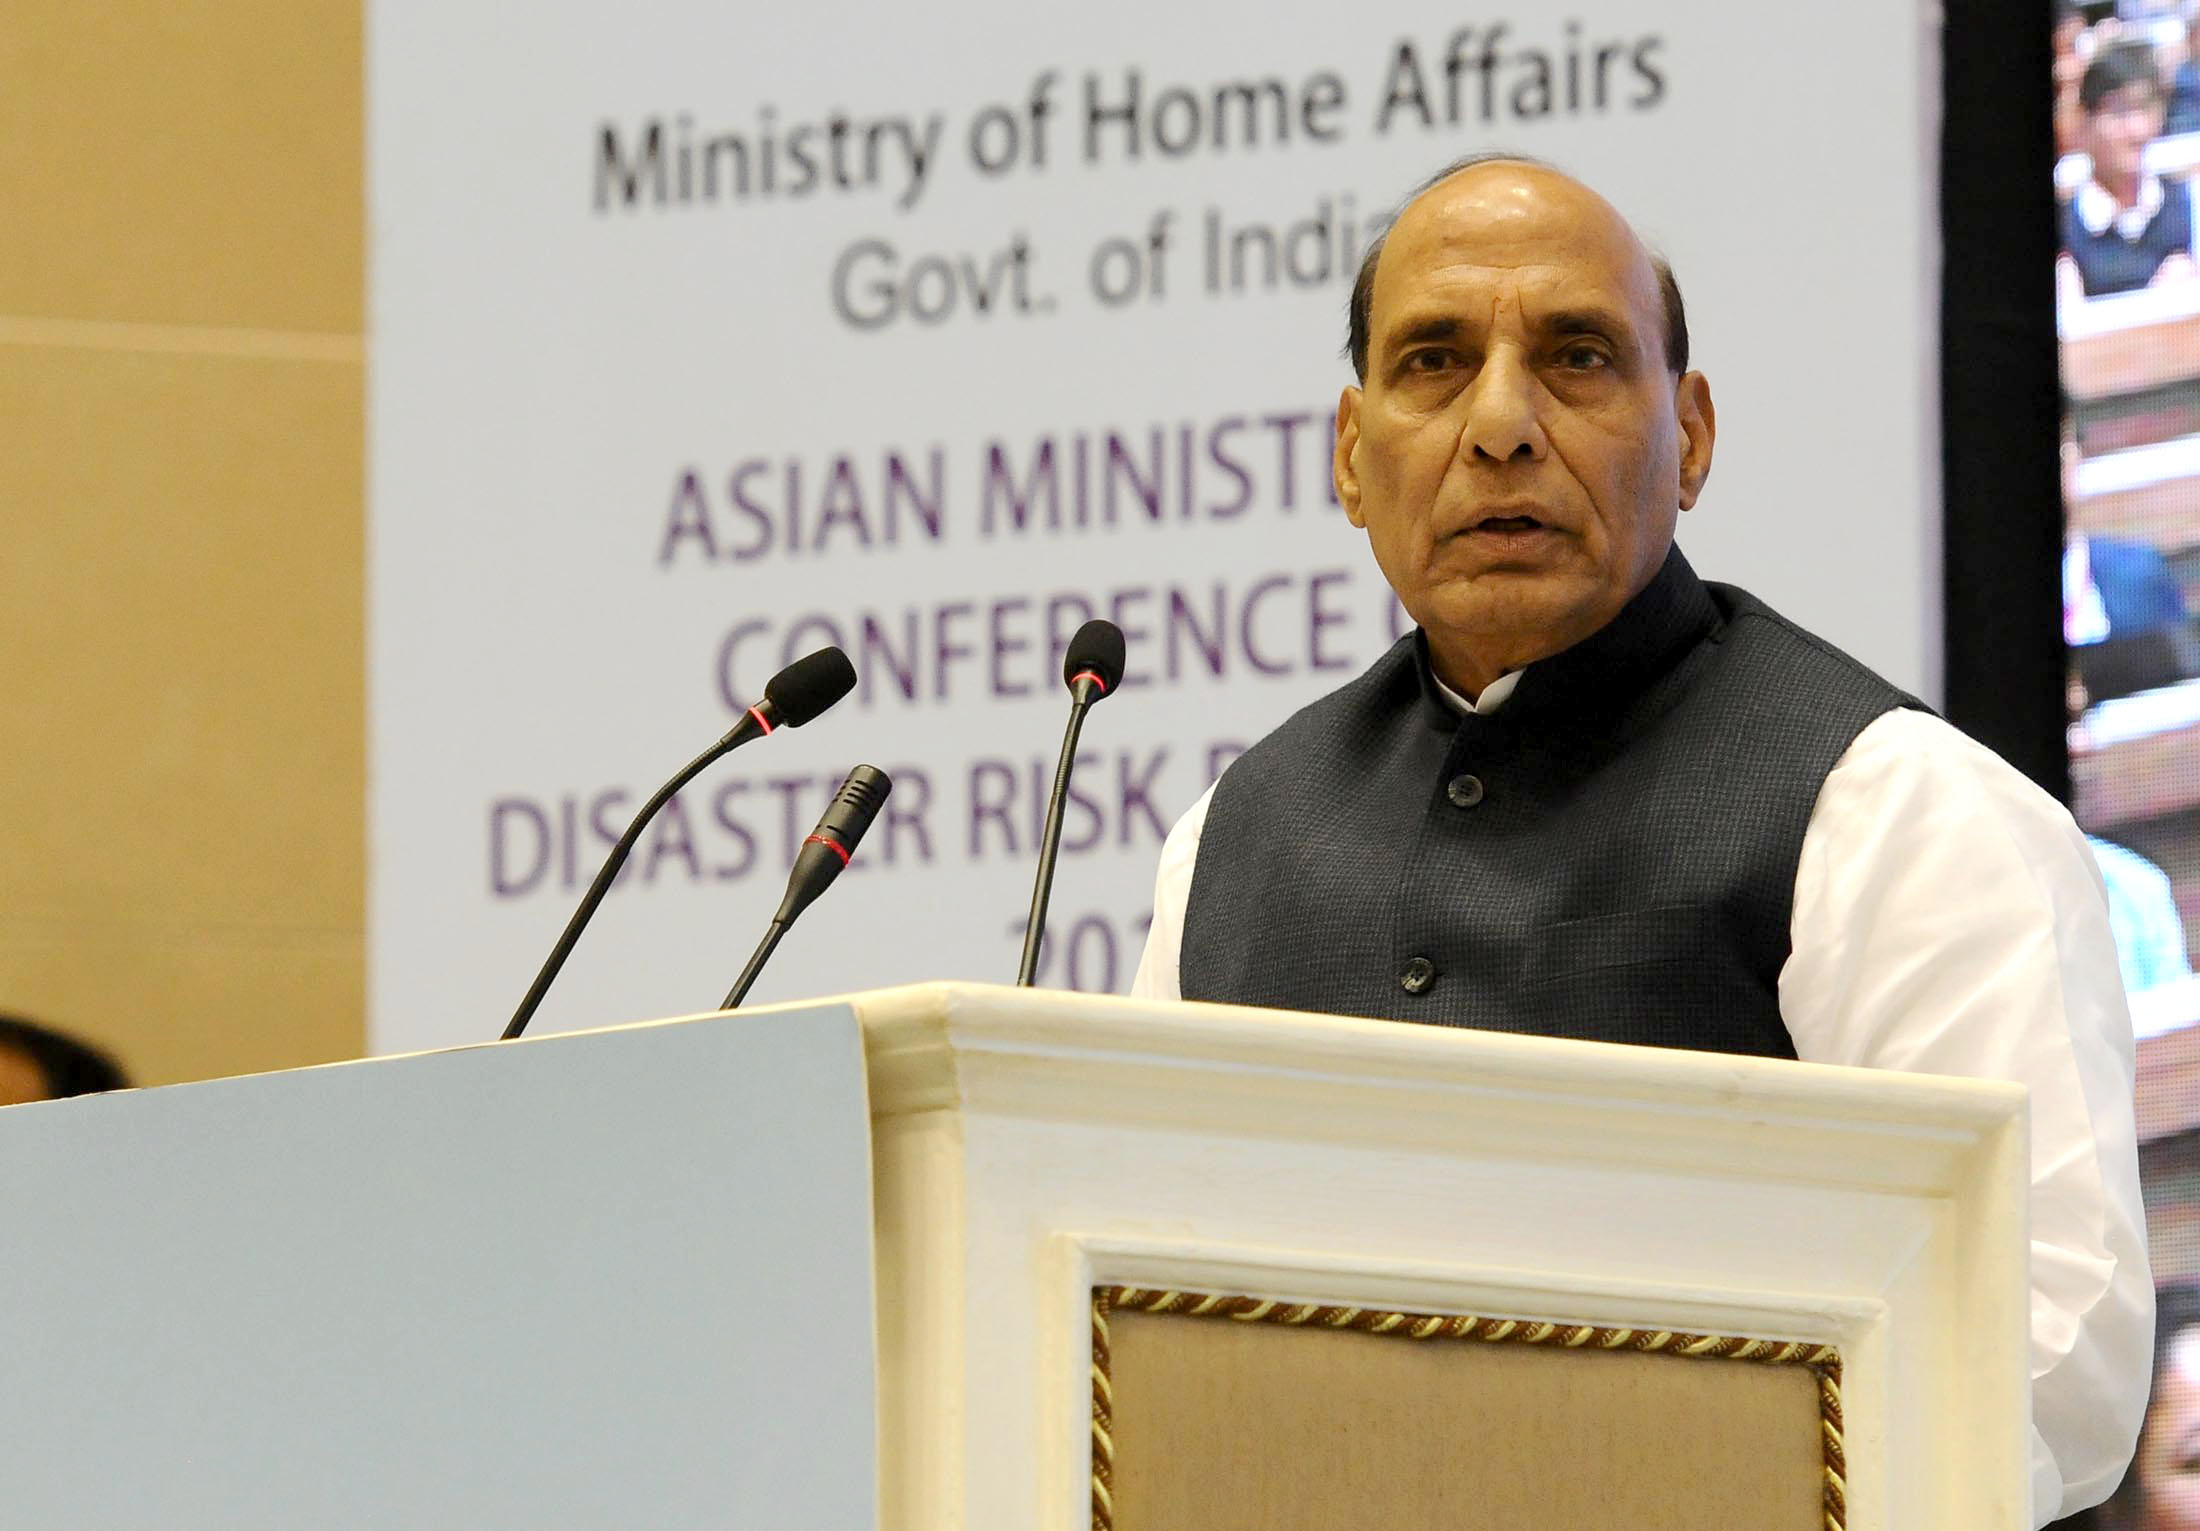 The Union Home Minister, Shri Rajnath Singh addressing at the closing ceremony of the Asian Ministerial Conference for Disaster Risk Reduction (AMCDRR) 2016, in New Delhi on November 05, 2016.